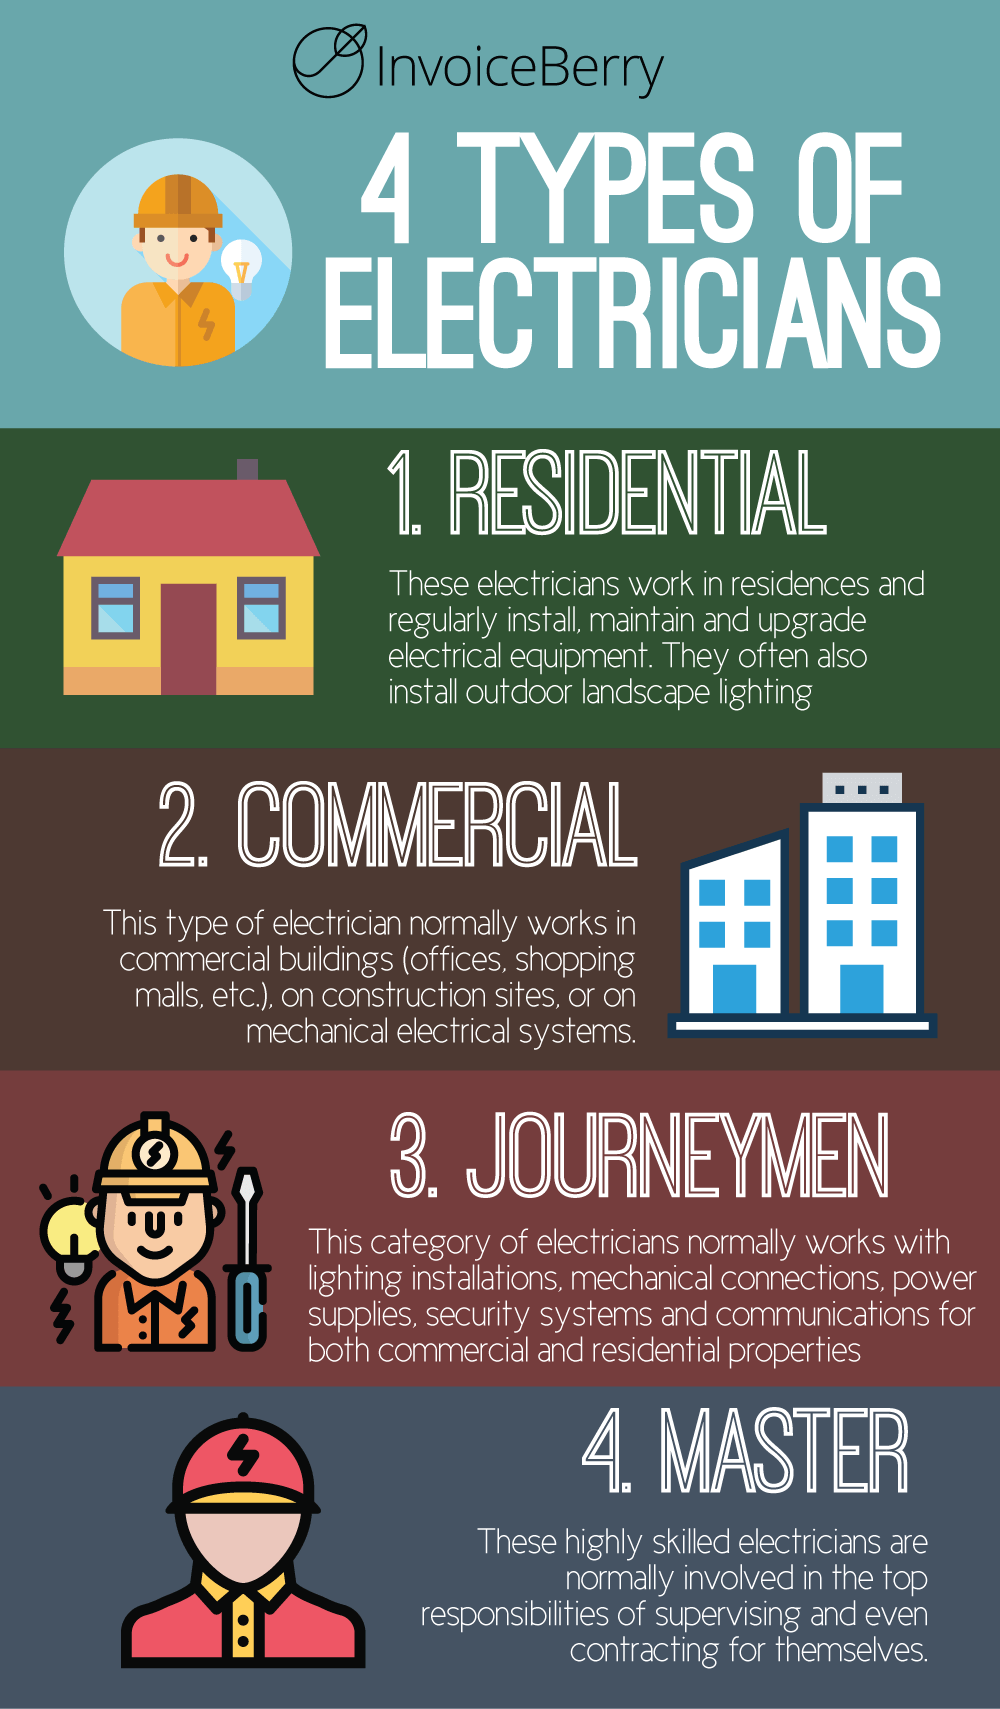 A graphic on the 4 types of electricians